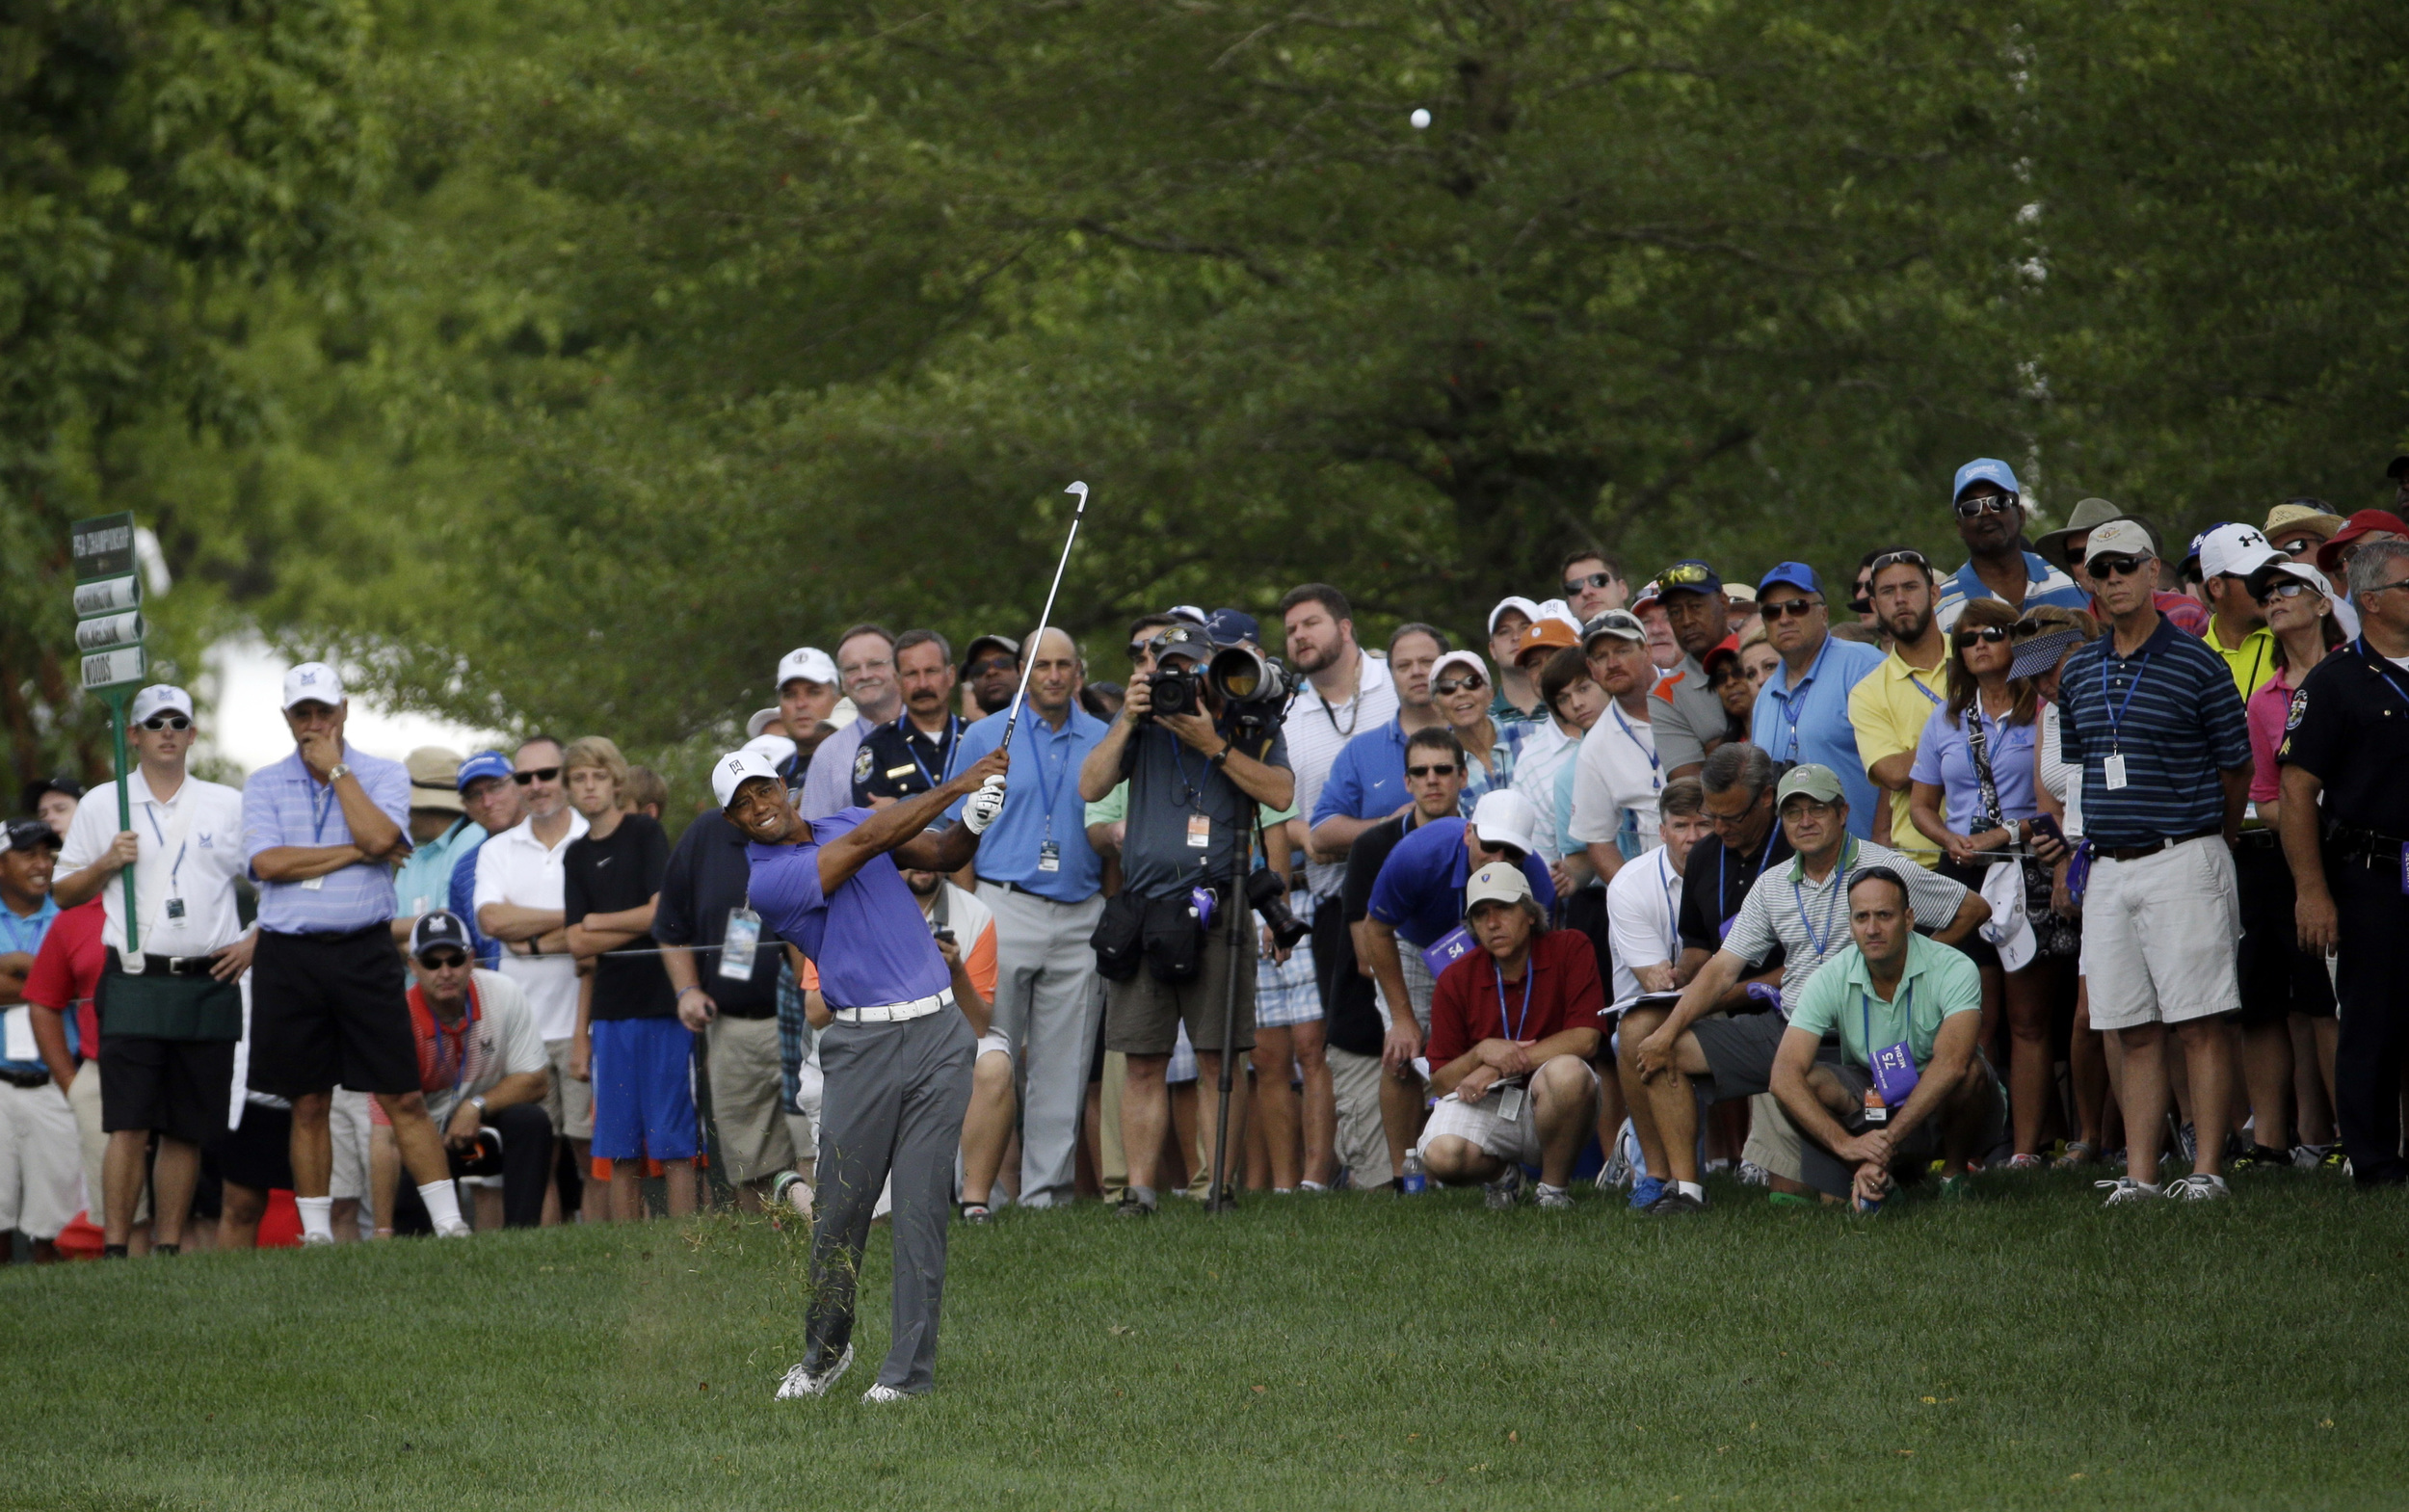 My day job is as an editor at Golf Digest. That's me (front right, green shirt) shadowing Tiger Woods at the PGA Championship.